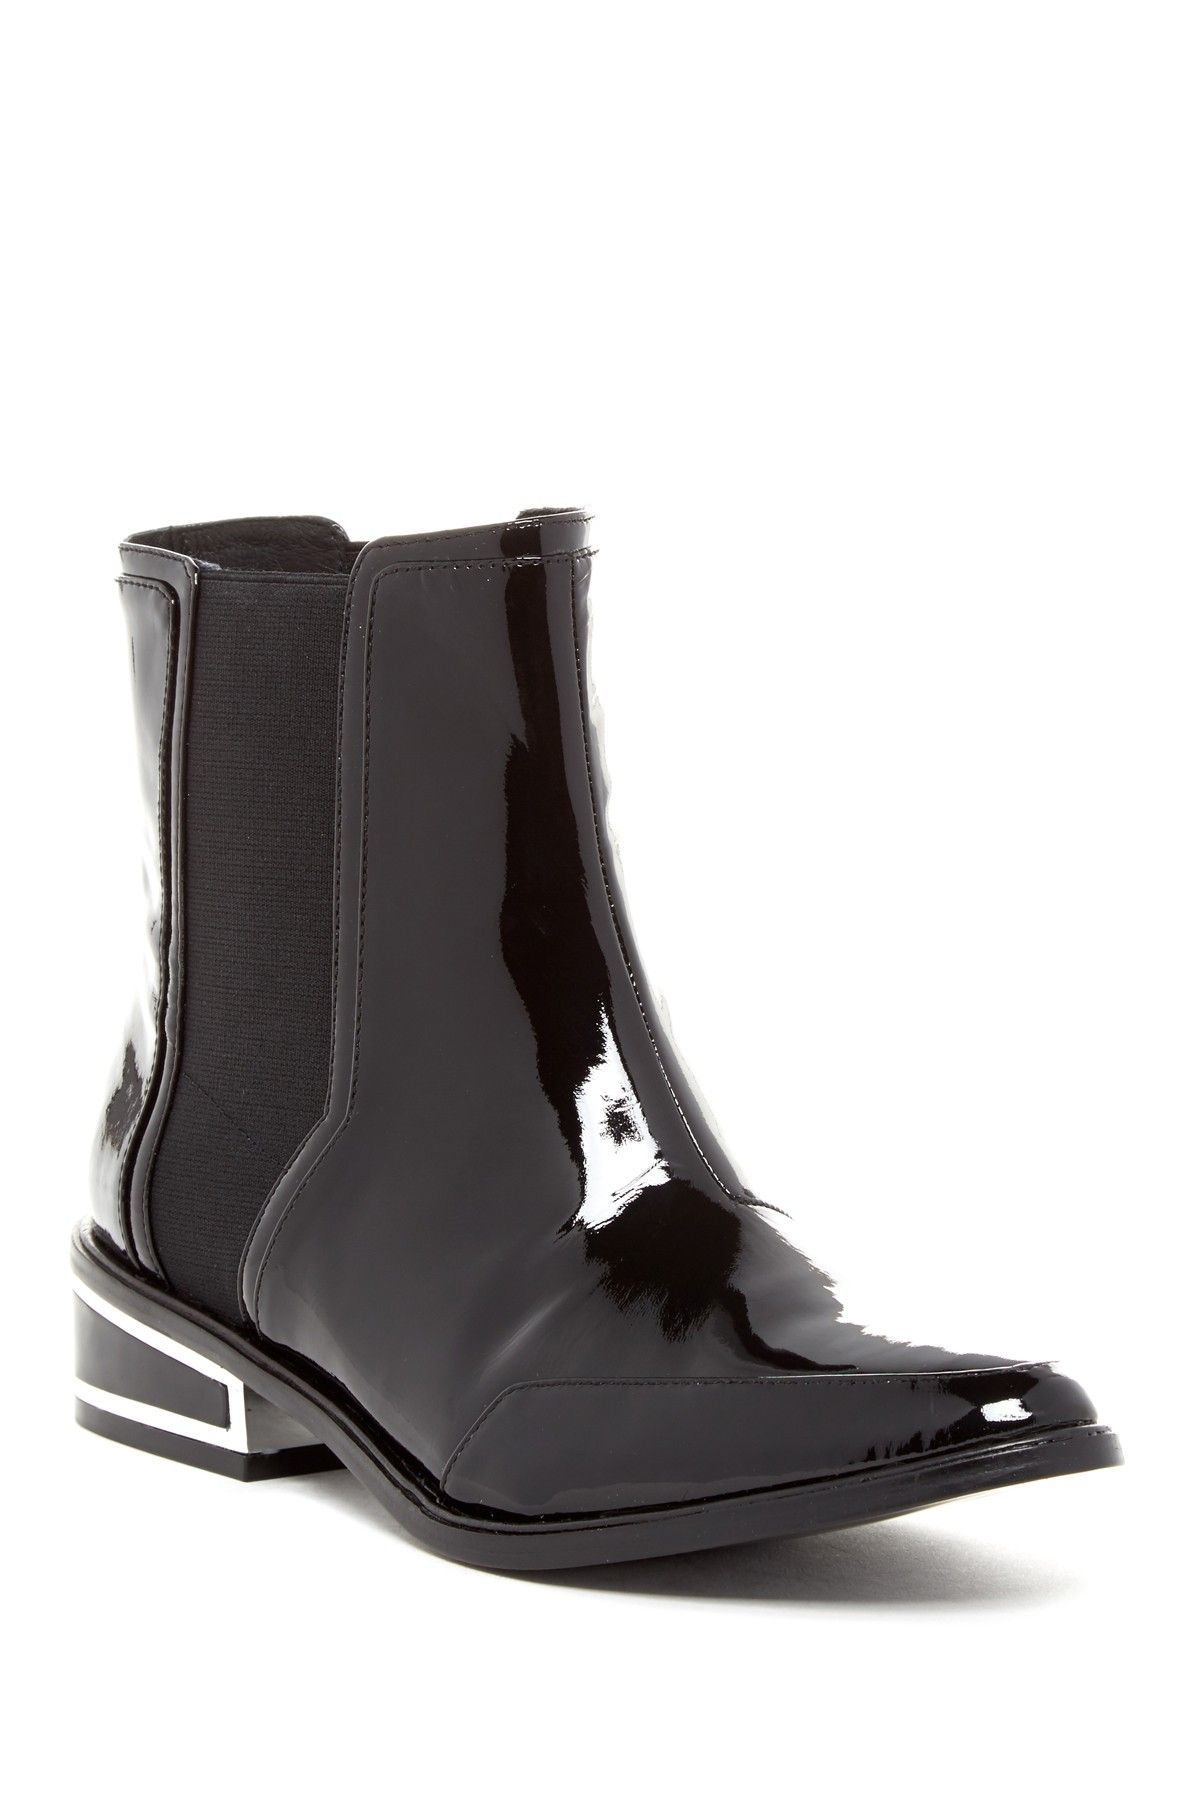 Need.  Rachel Zoe Black Patent Billie Ankle Boot